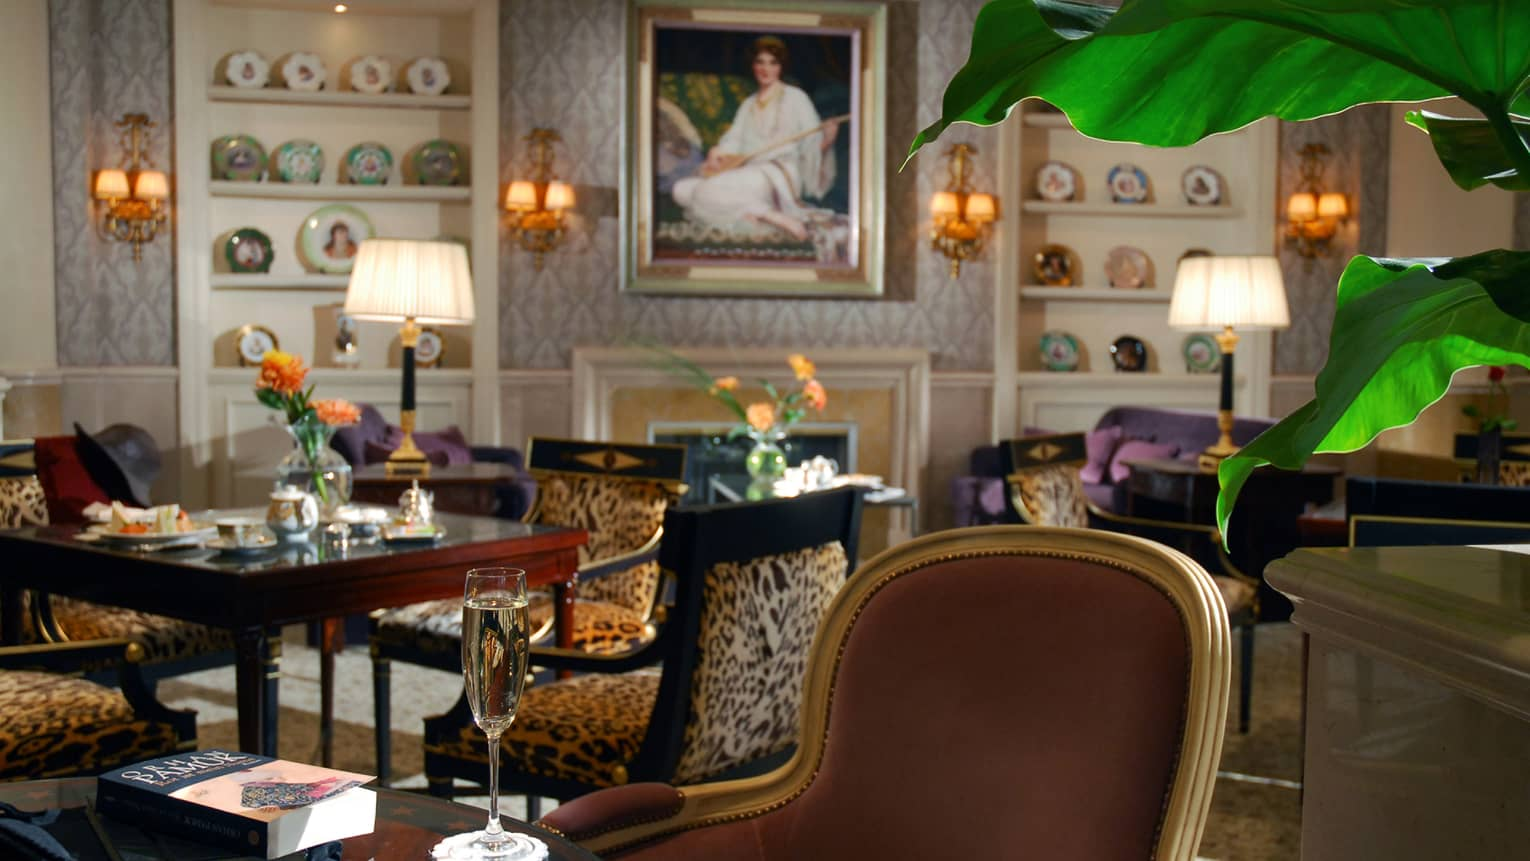 Lobby Lounge with leopard print dining chairs, Champagne on tables, large paintings and shelves with decorative plates